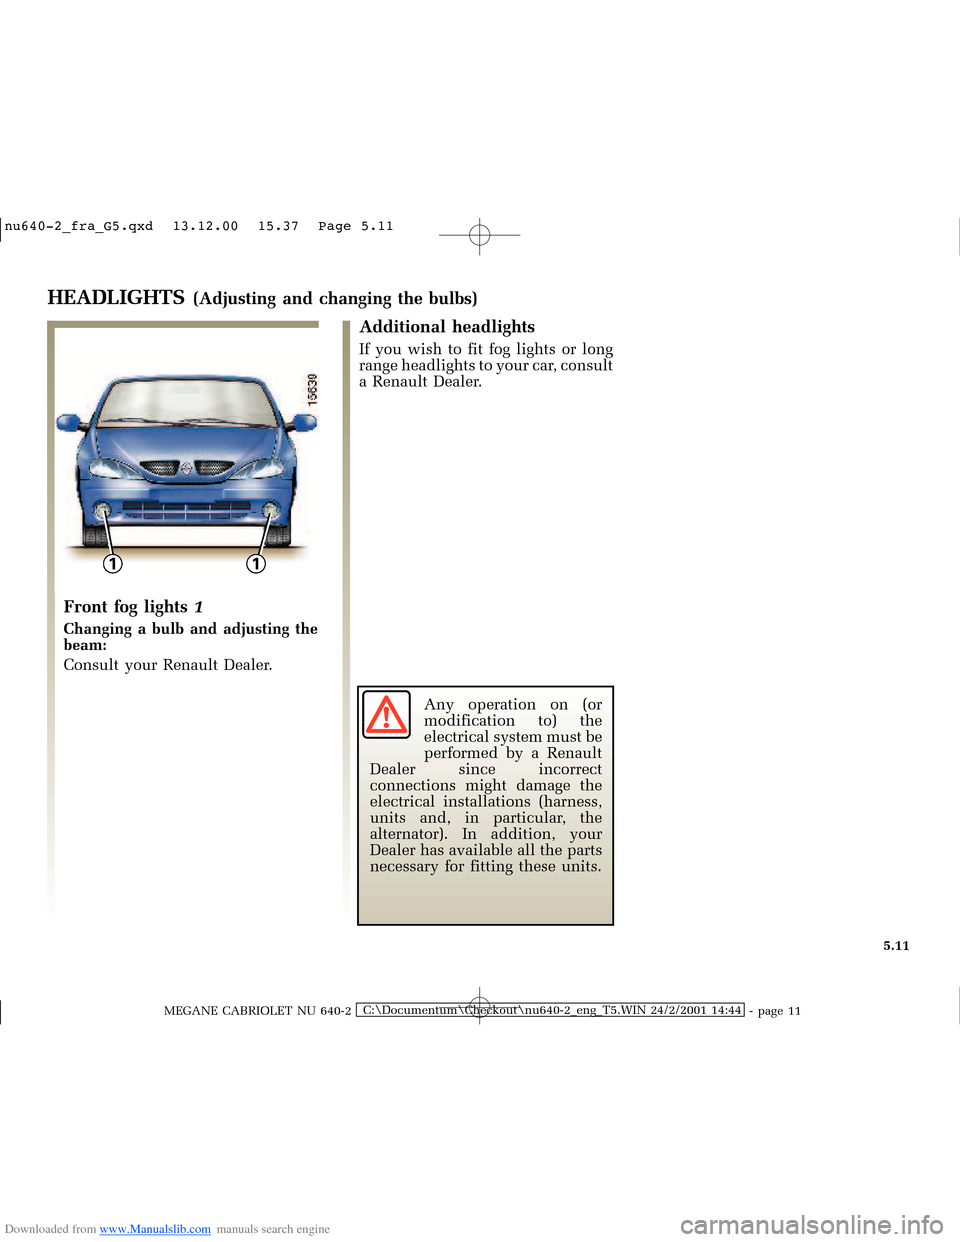 RENAULT MEGANE 2000 X64 / 1.G Owners Manual Downloaded from www.Manualslib.com manuals search engine 11 QXBIUDB*T[G      3DJH  MEGANE CABRIOLET NU 640-2C:\Documentum\C